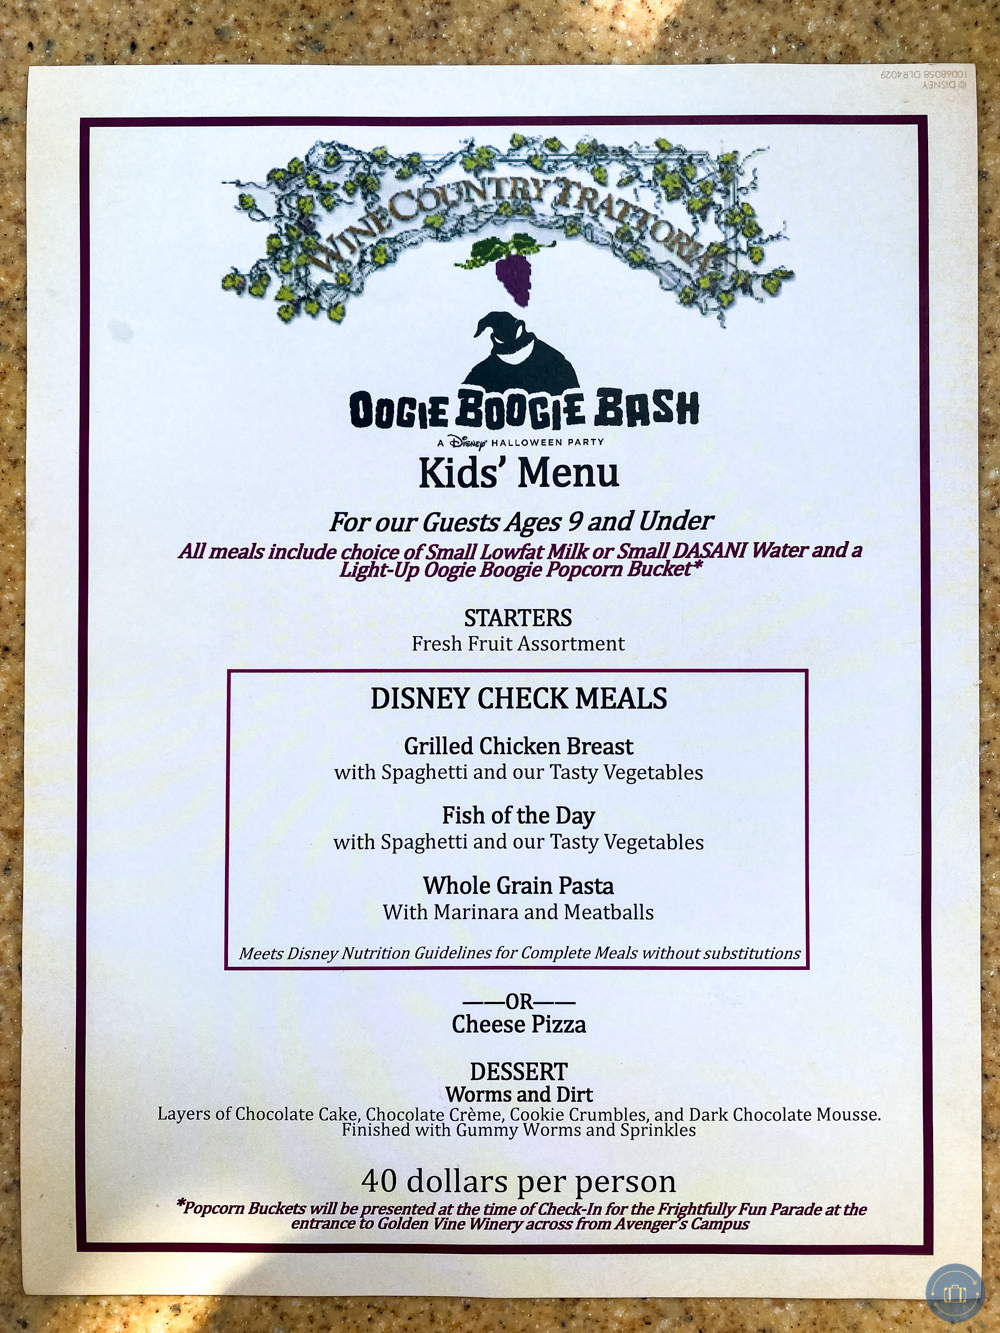 oogie boogie bash parade wine country trattoria dining package kids menu